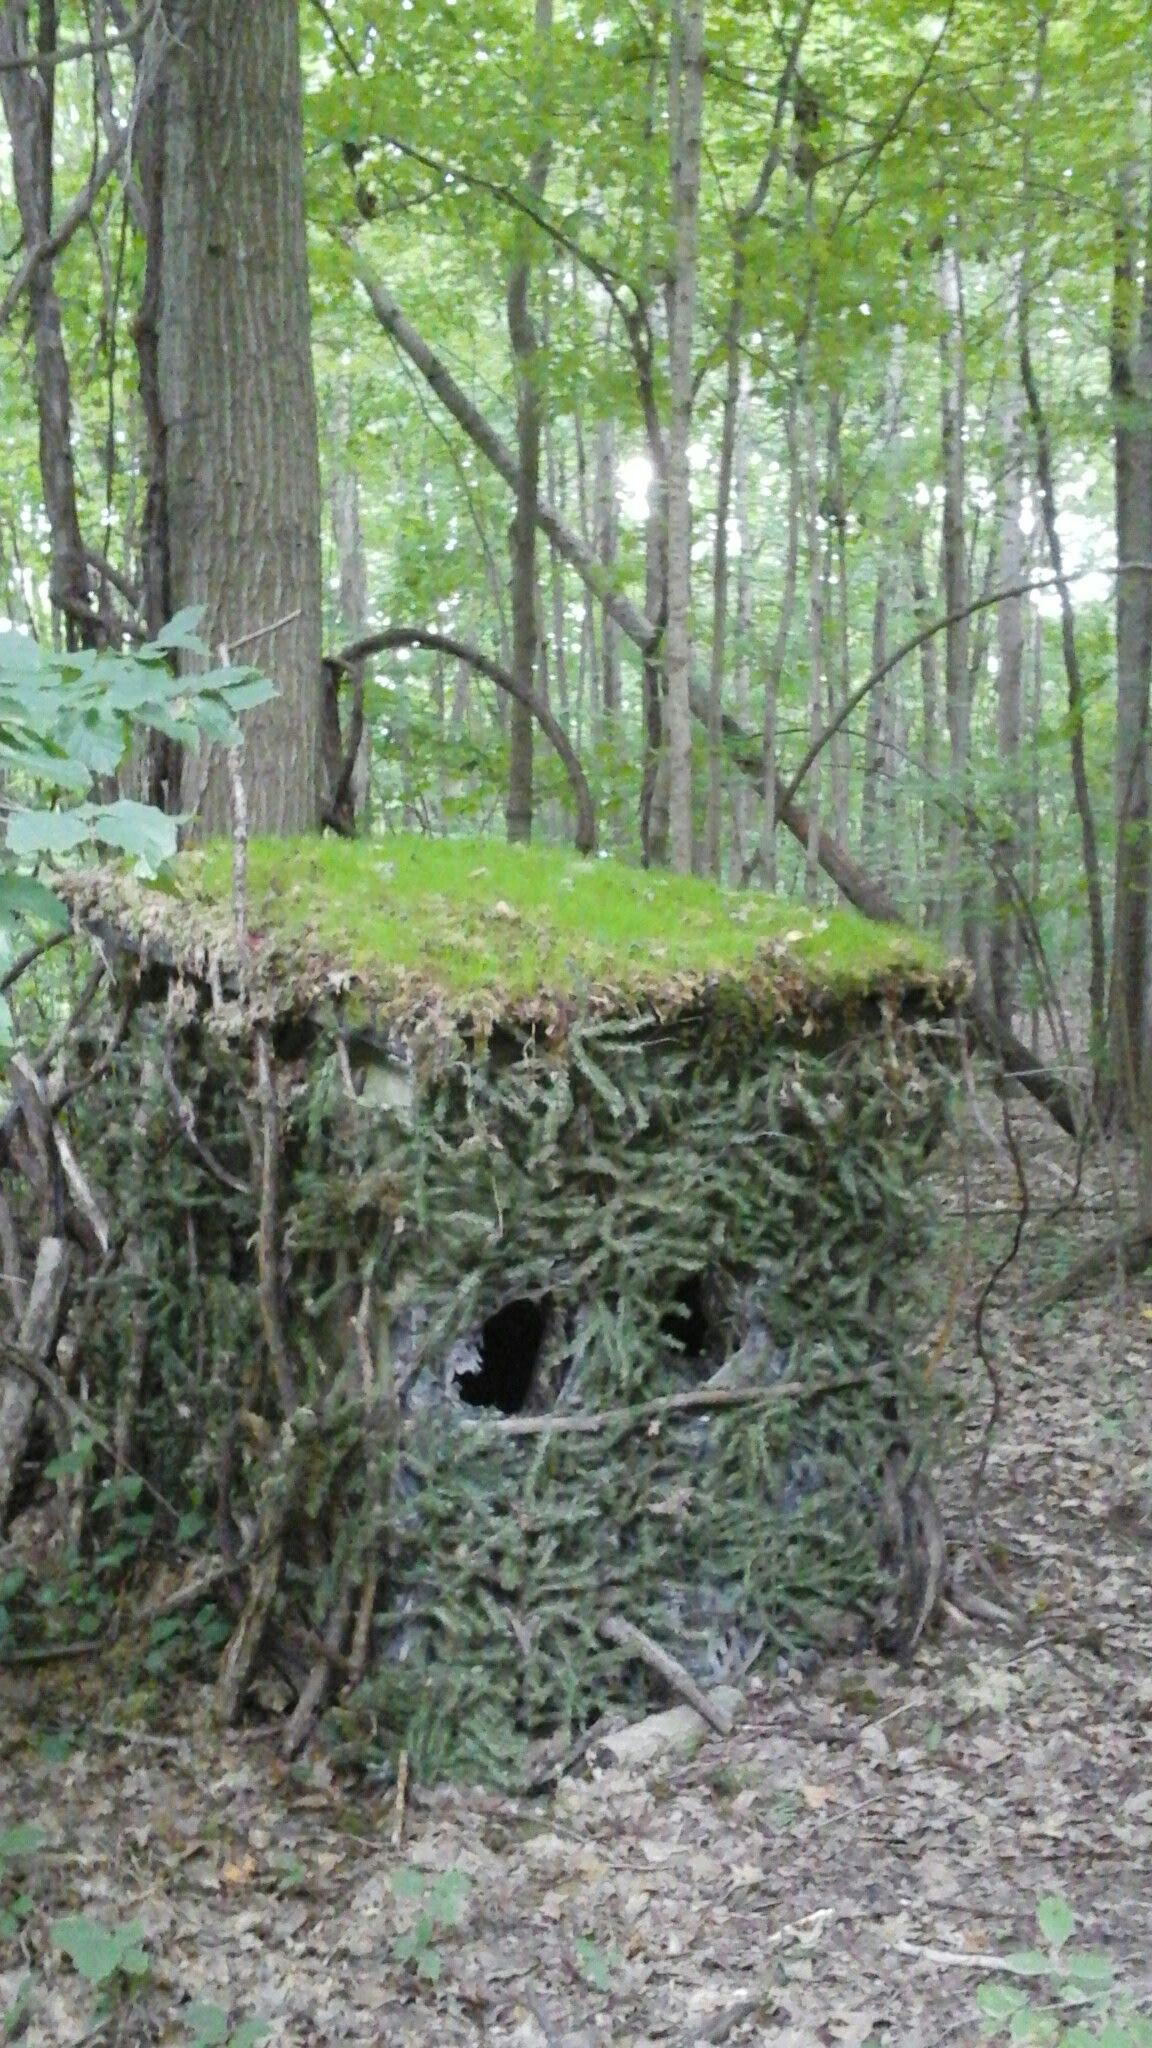 Ground Blind Made From Garden Tractor Crates Old Artificial Christmas Trees A Metal Roof But With Real Moss An Deer Hunting Stands Hunting Blinds Deer Blind